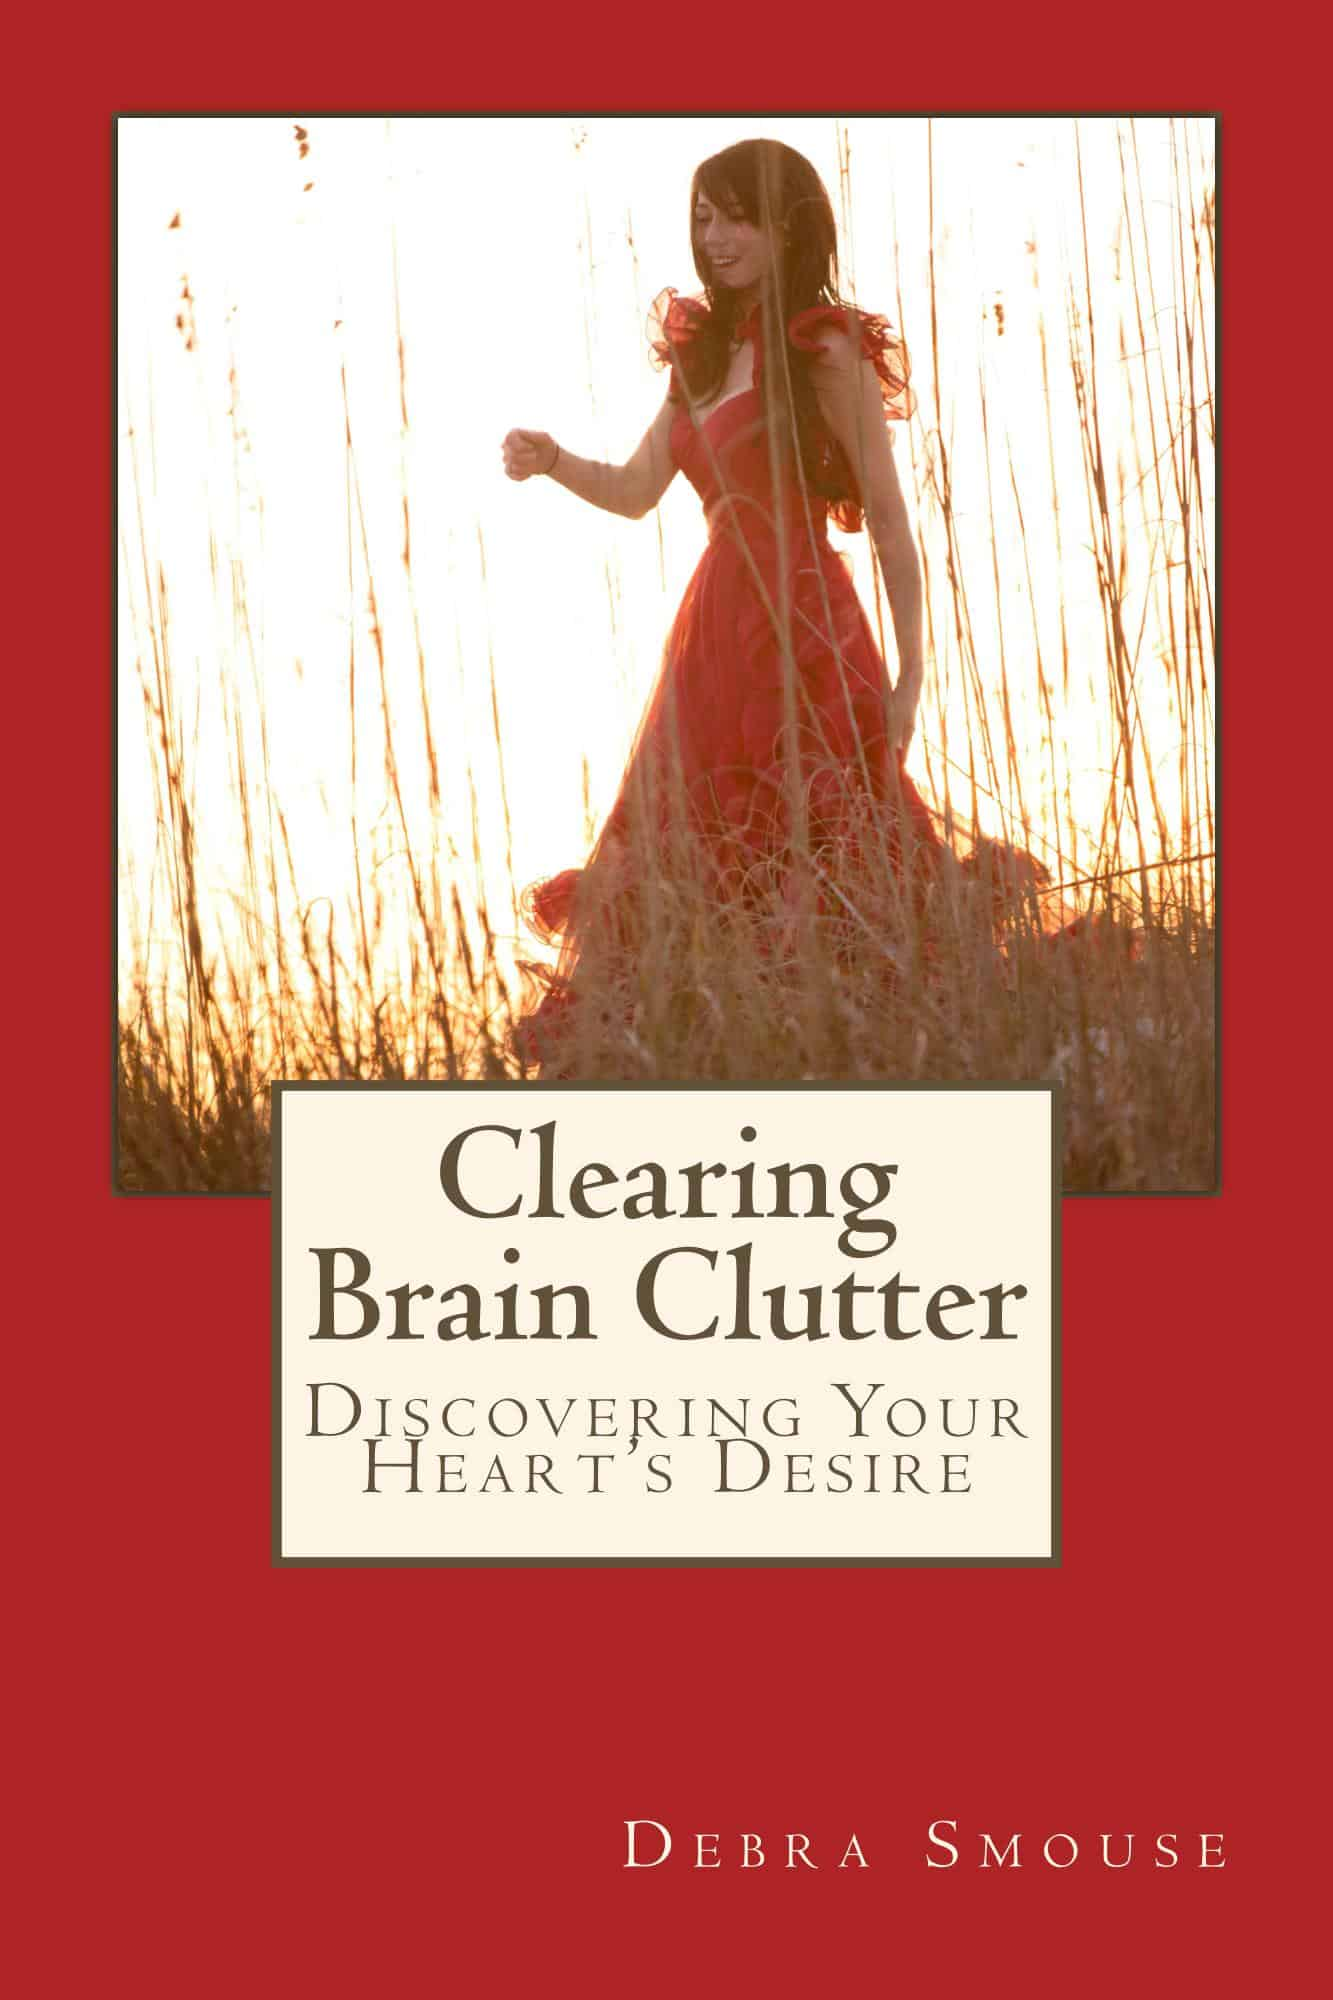 Are you feeling lost or unsure? Clearing Brain Clutter can help!